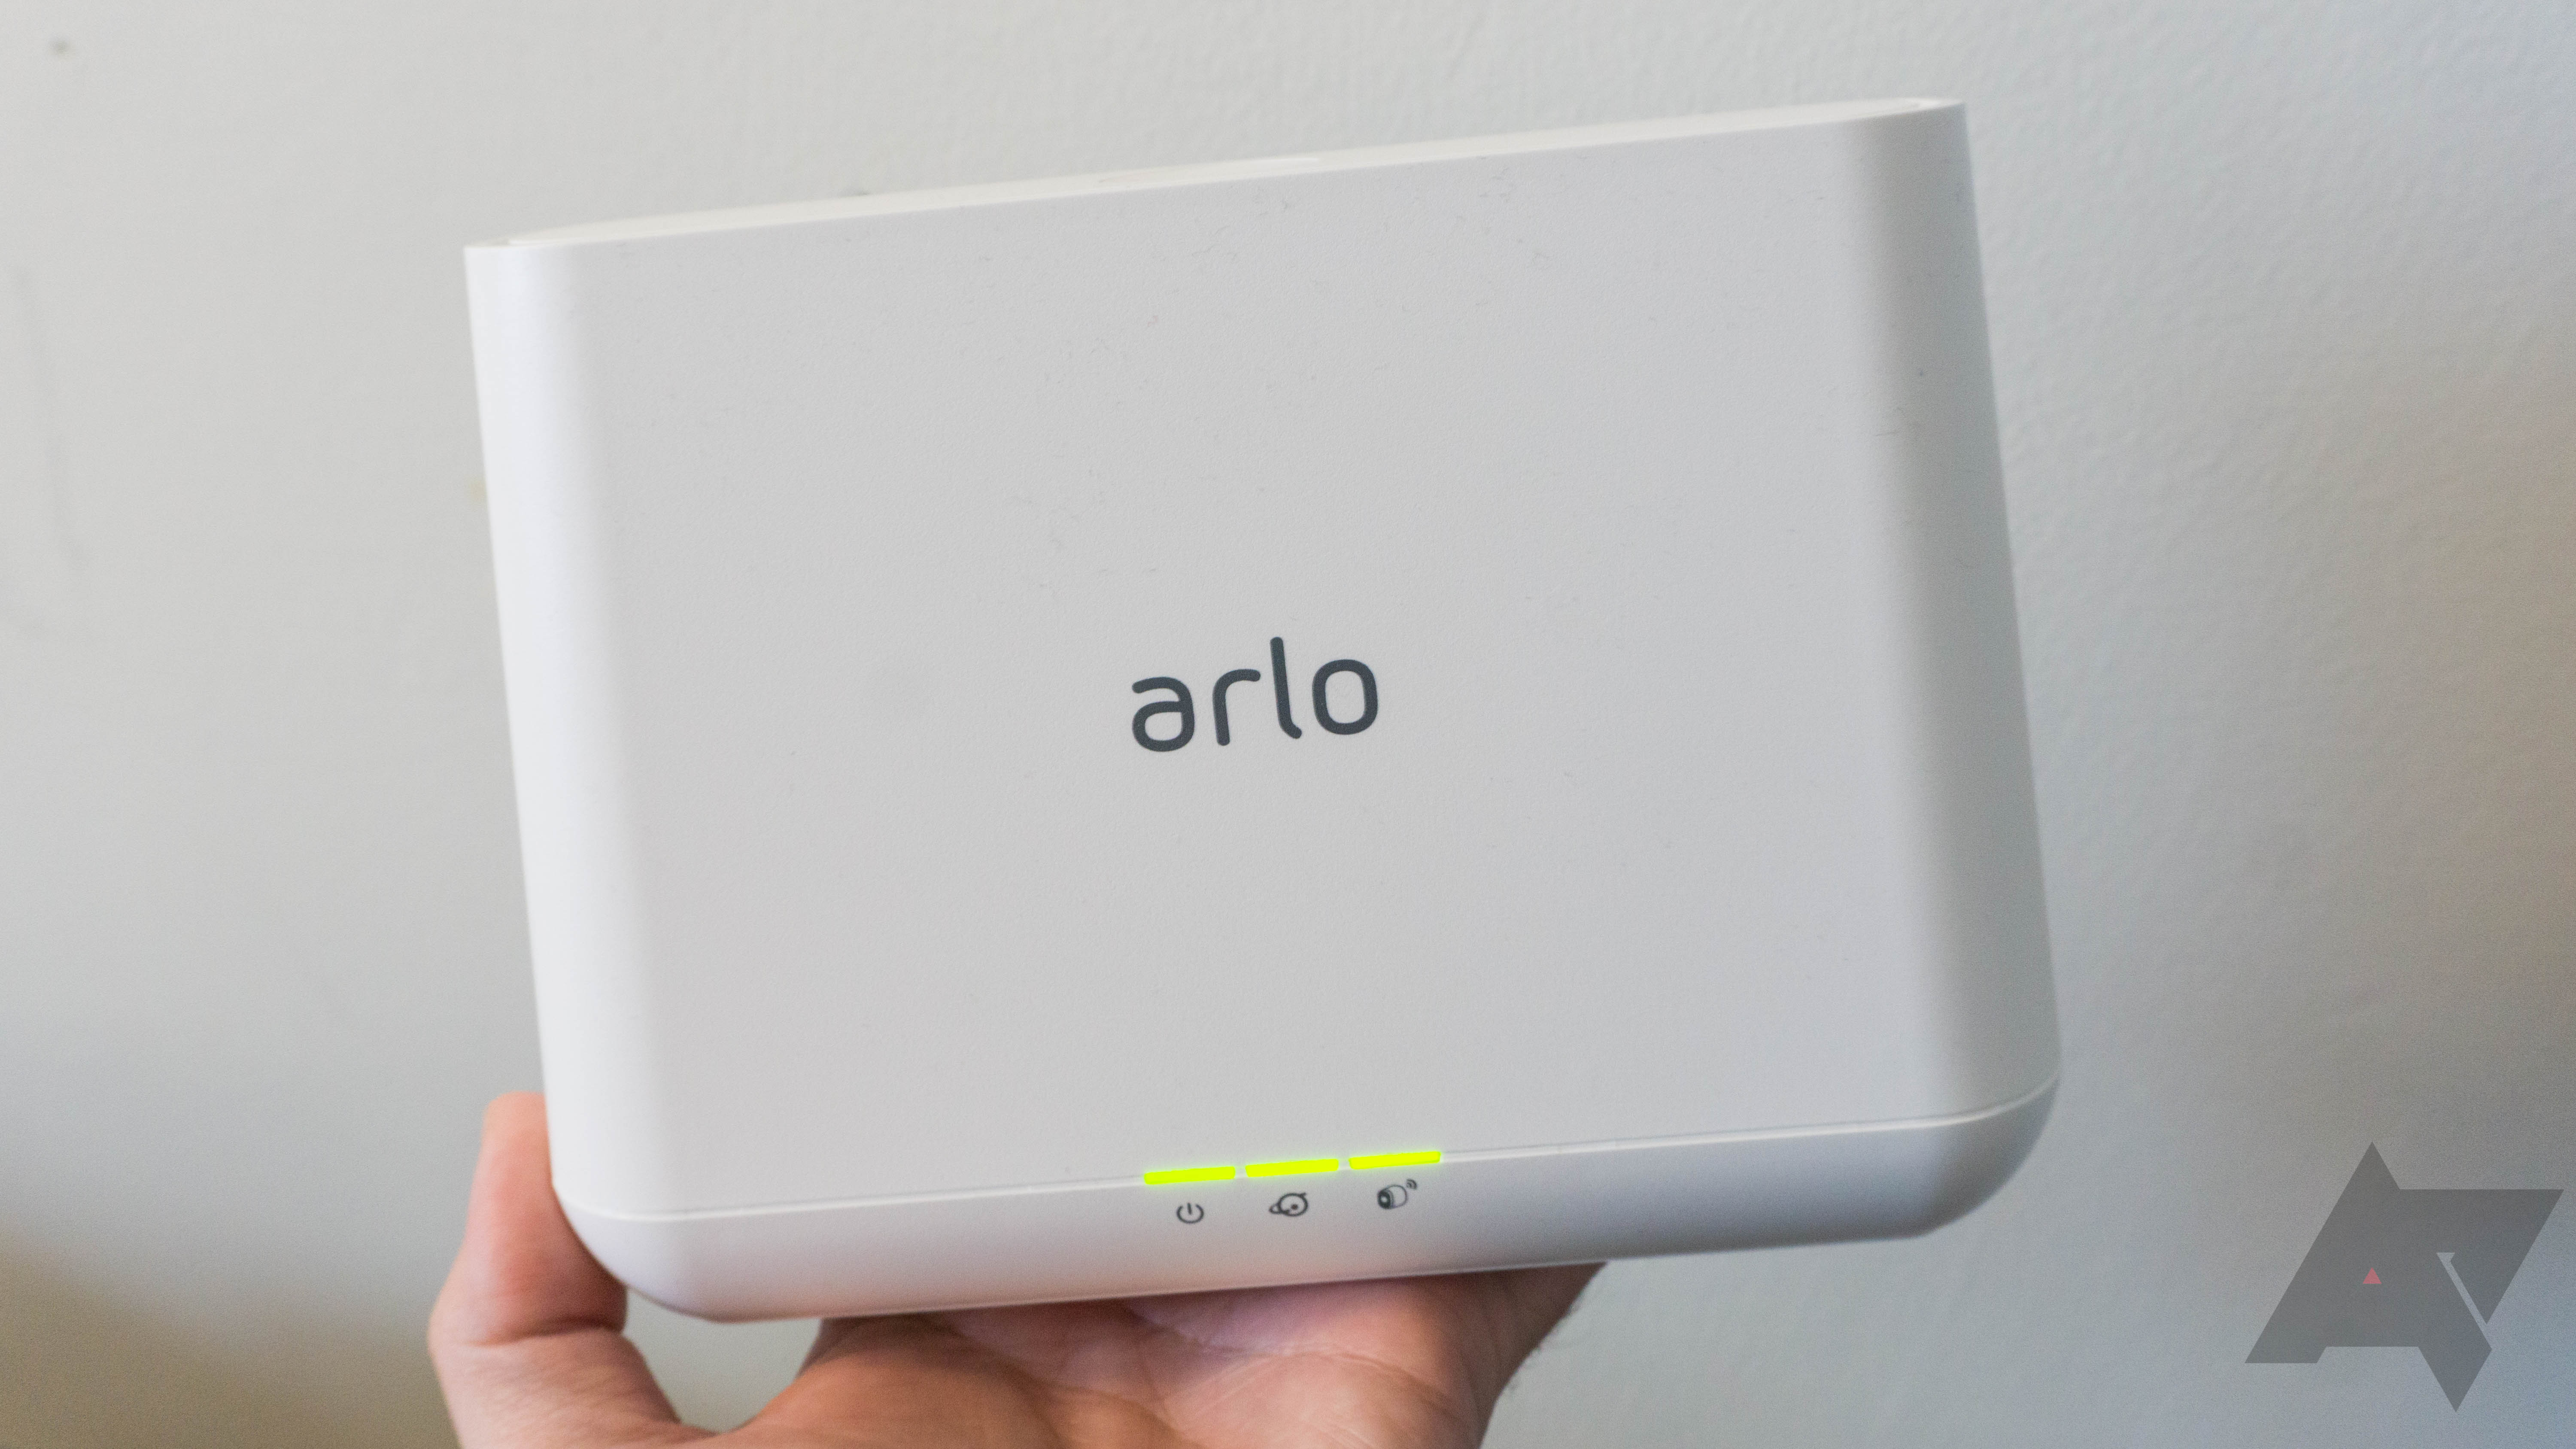 Arlo Pro 2 review: The best wireless camera still has some drawbacks